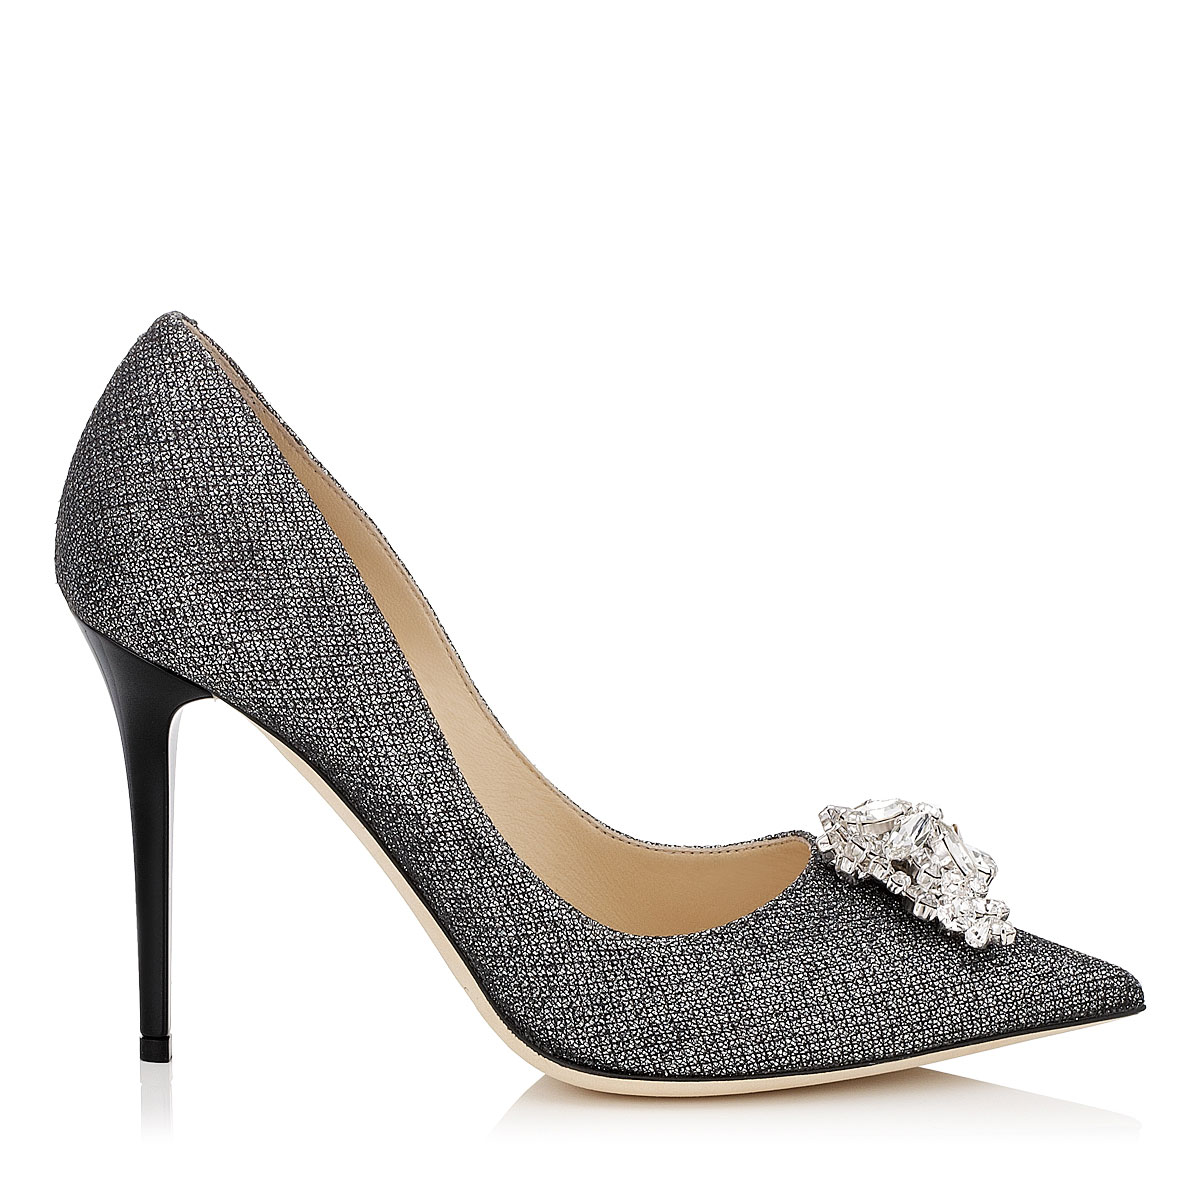 MANDA Anthracite Lamé Glitter Pumps with Crystal Detail